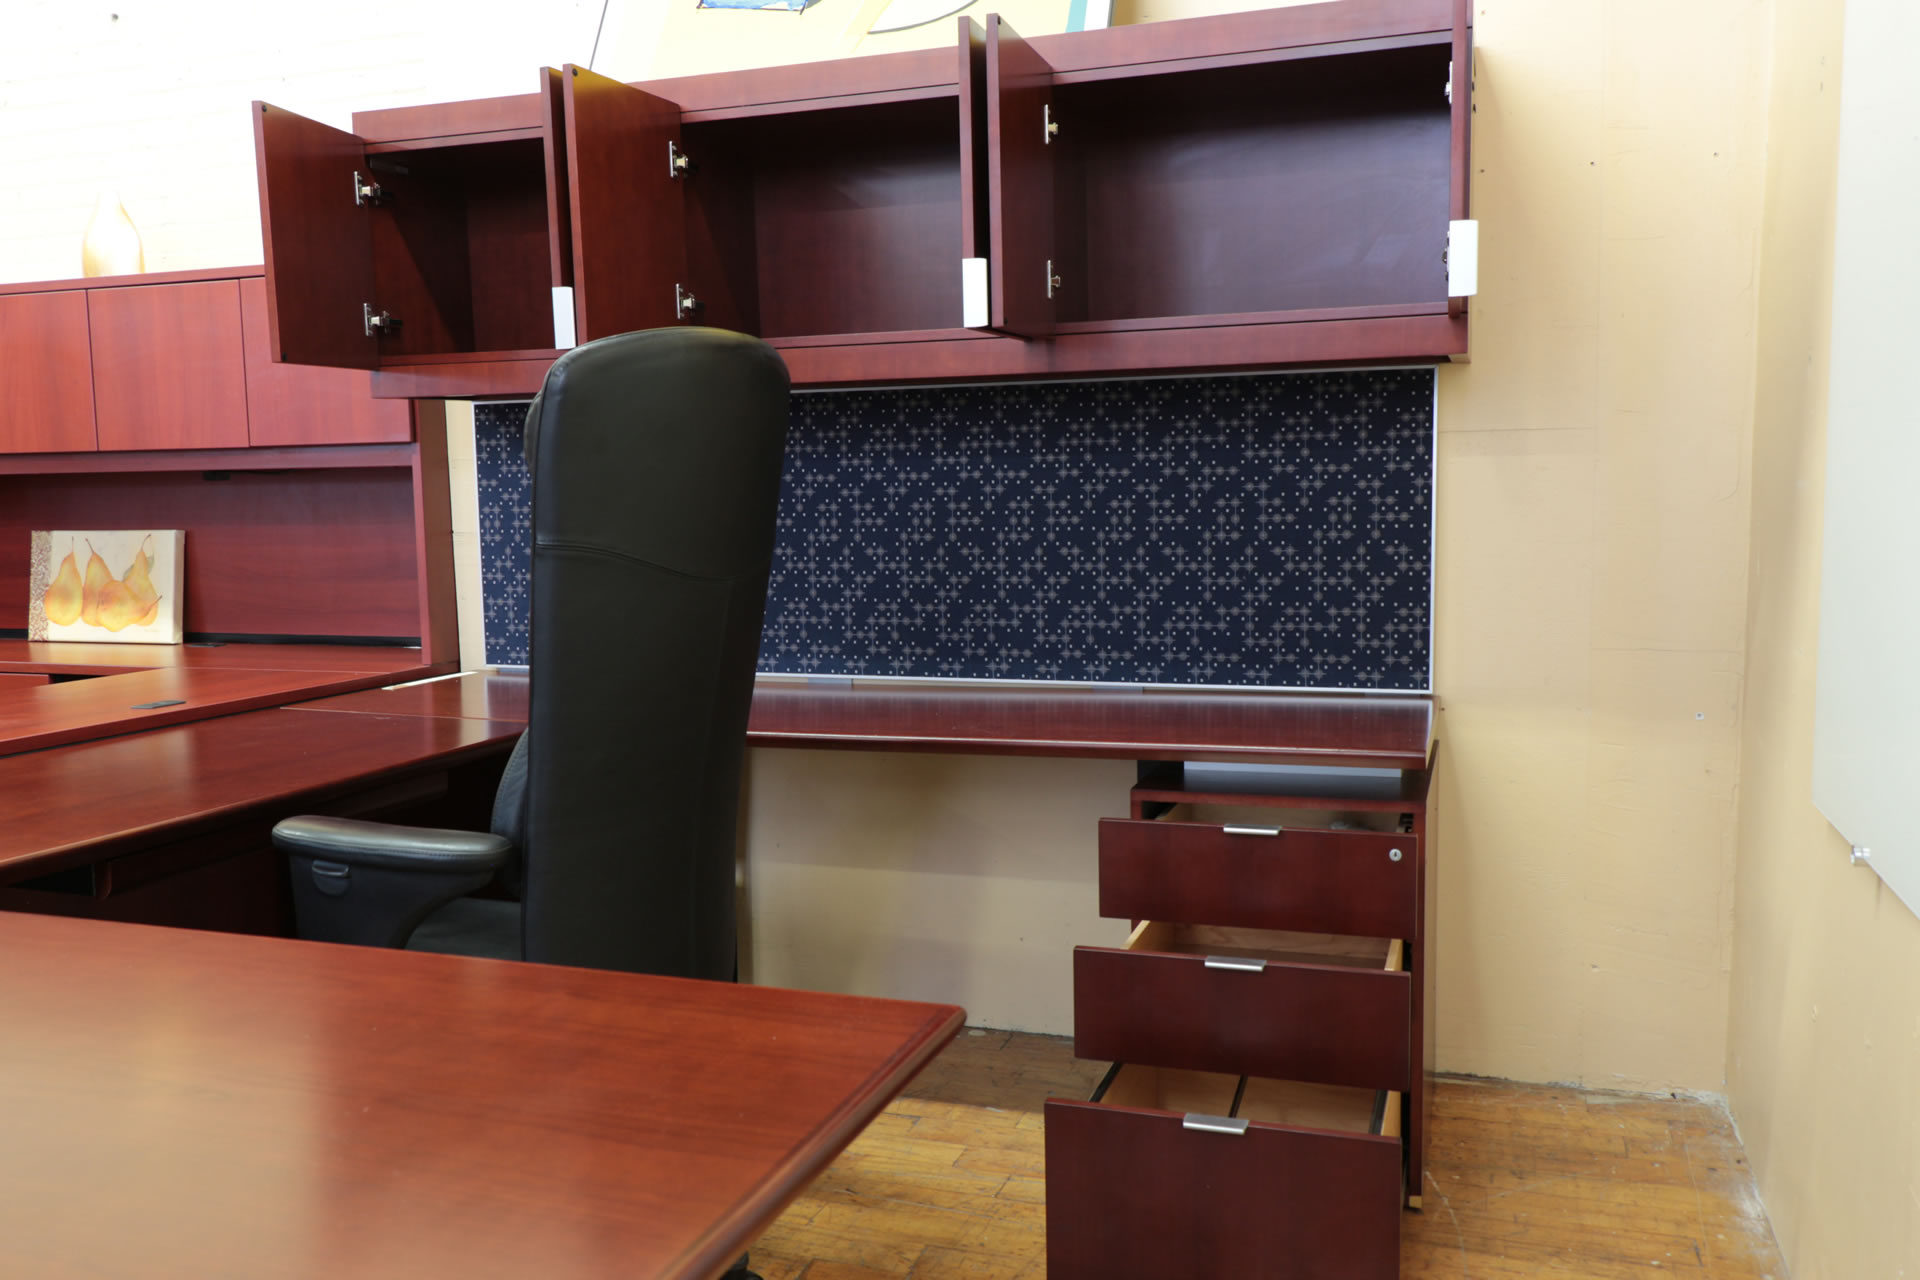 peartreeofficefurniture_peartreeofficefurniture_peartreeofficefurniture_img_9258.jpg